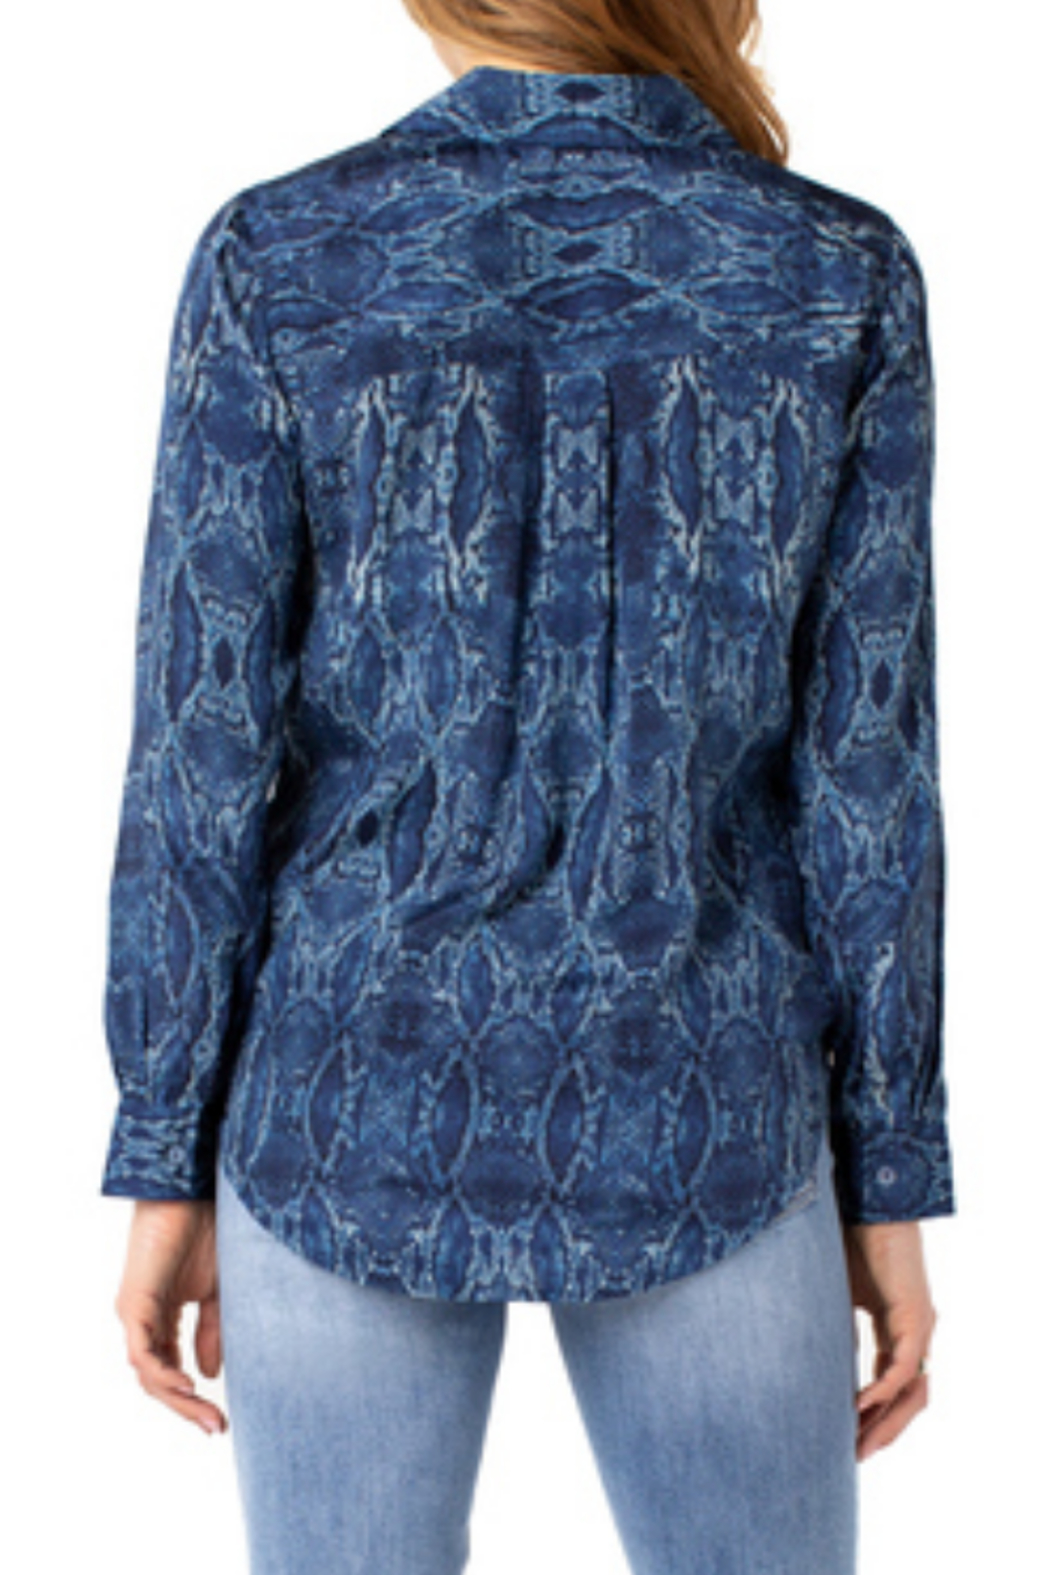 Liverpool  Button up blue woven snakeskin print blouse LM8332G69P9 - Front Full Image